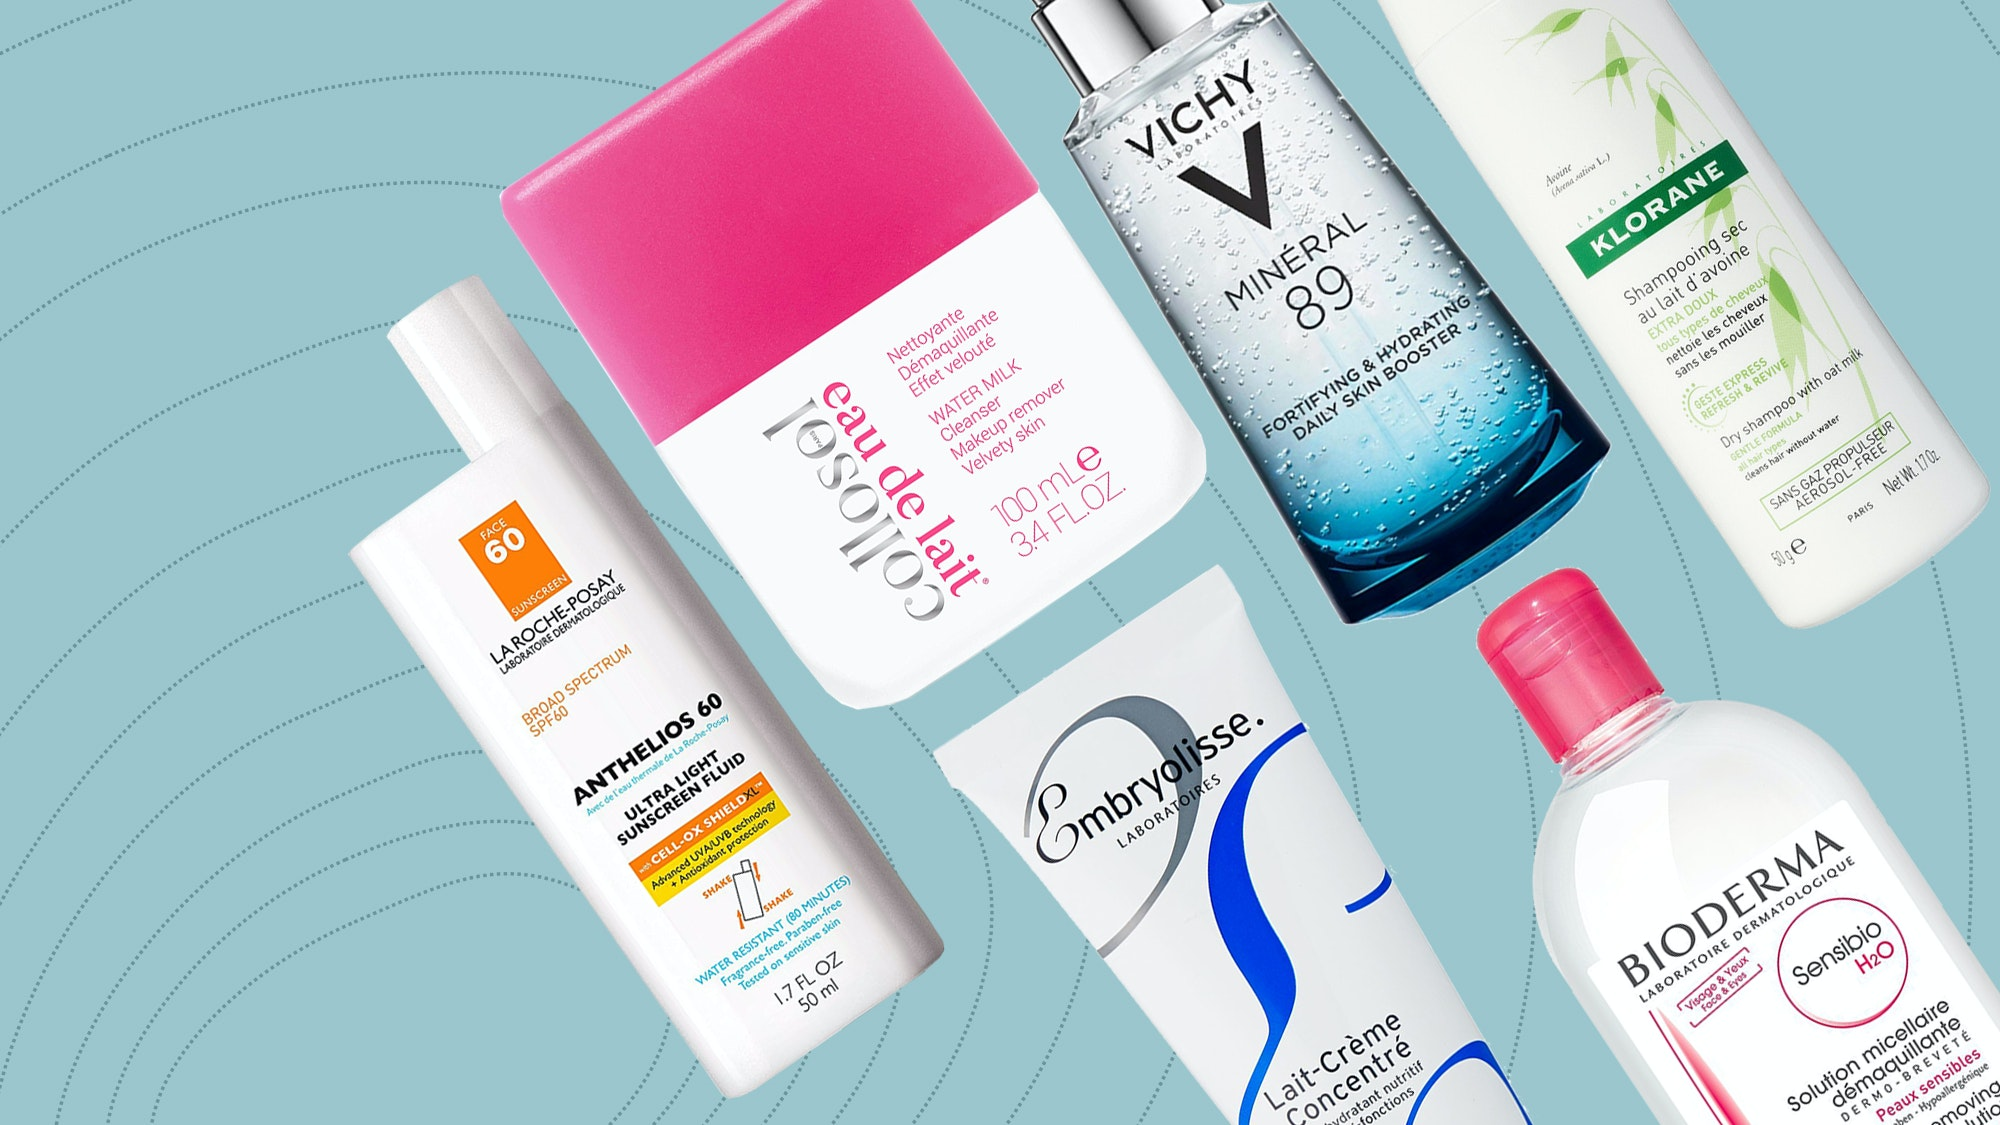 6 French Beauty Products You Should Have In Your Stash